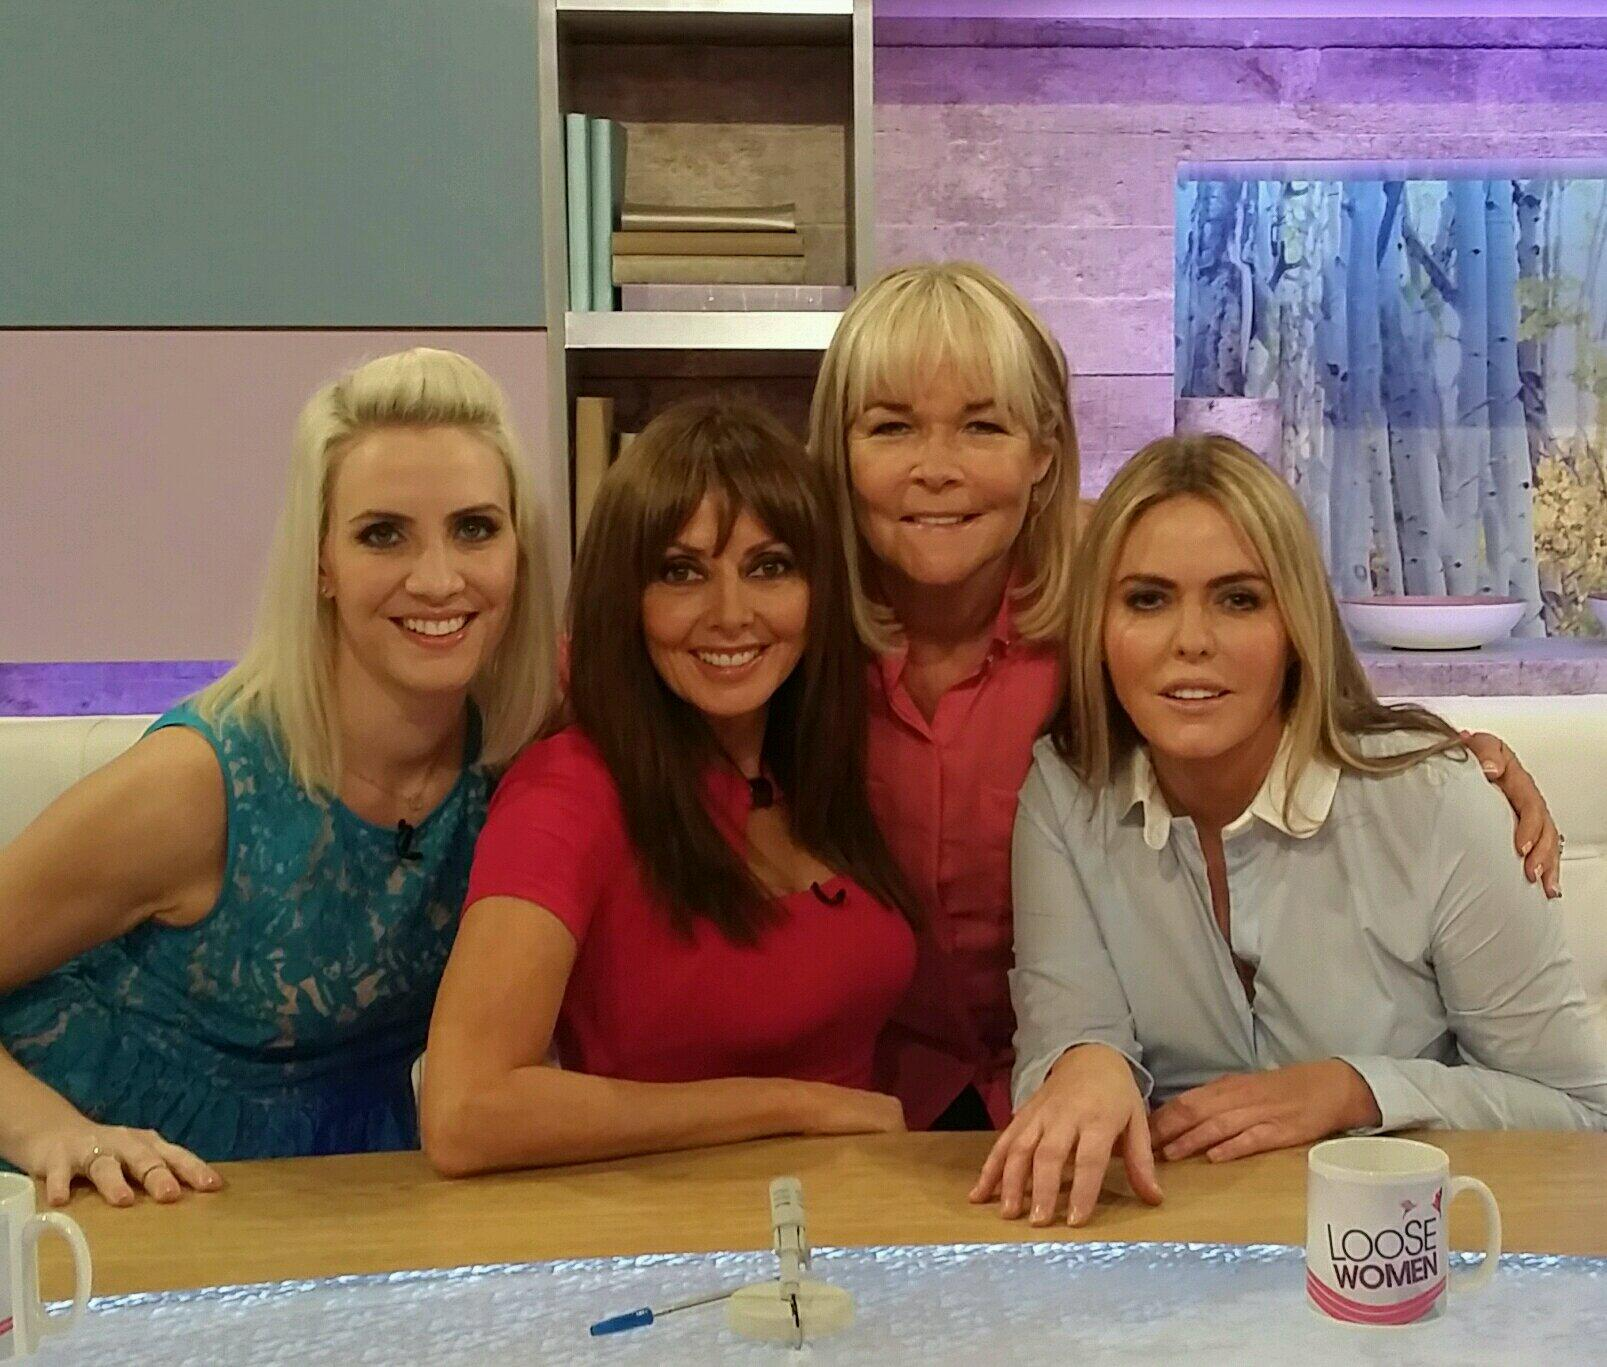 On @loosewomen with @LindaRobson58 Patsy K and @_clairerichards  at 12.30.... Ooh er missus... Xx http://t.co/TwHM9uHP8G